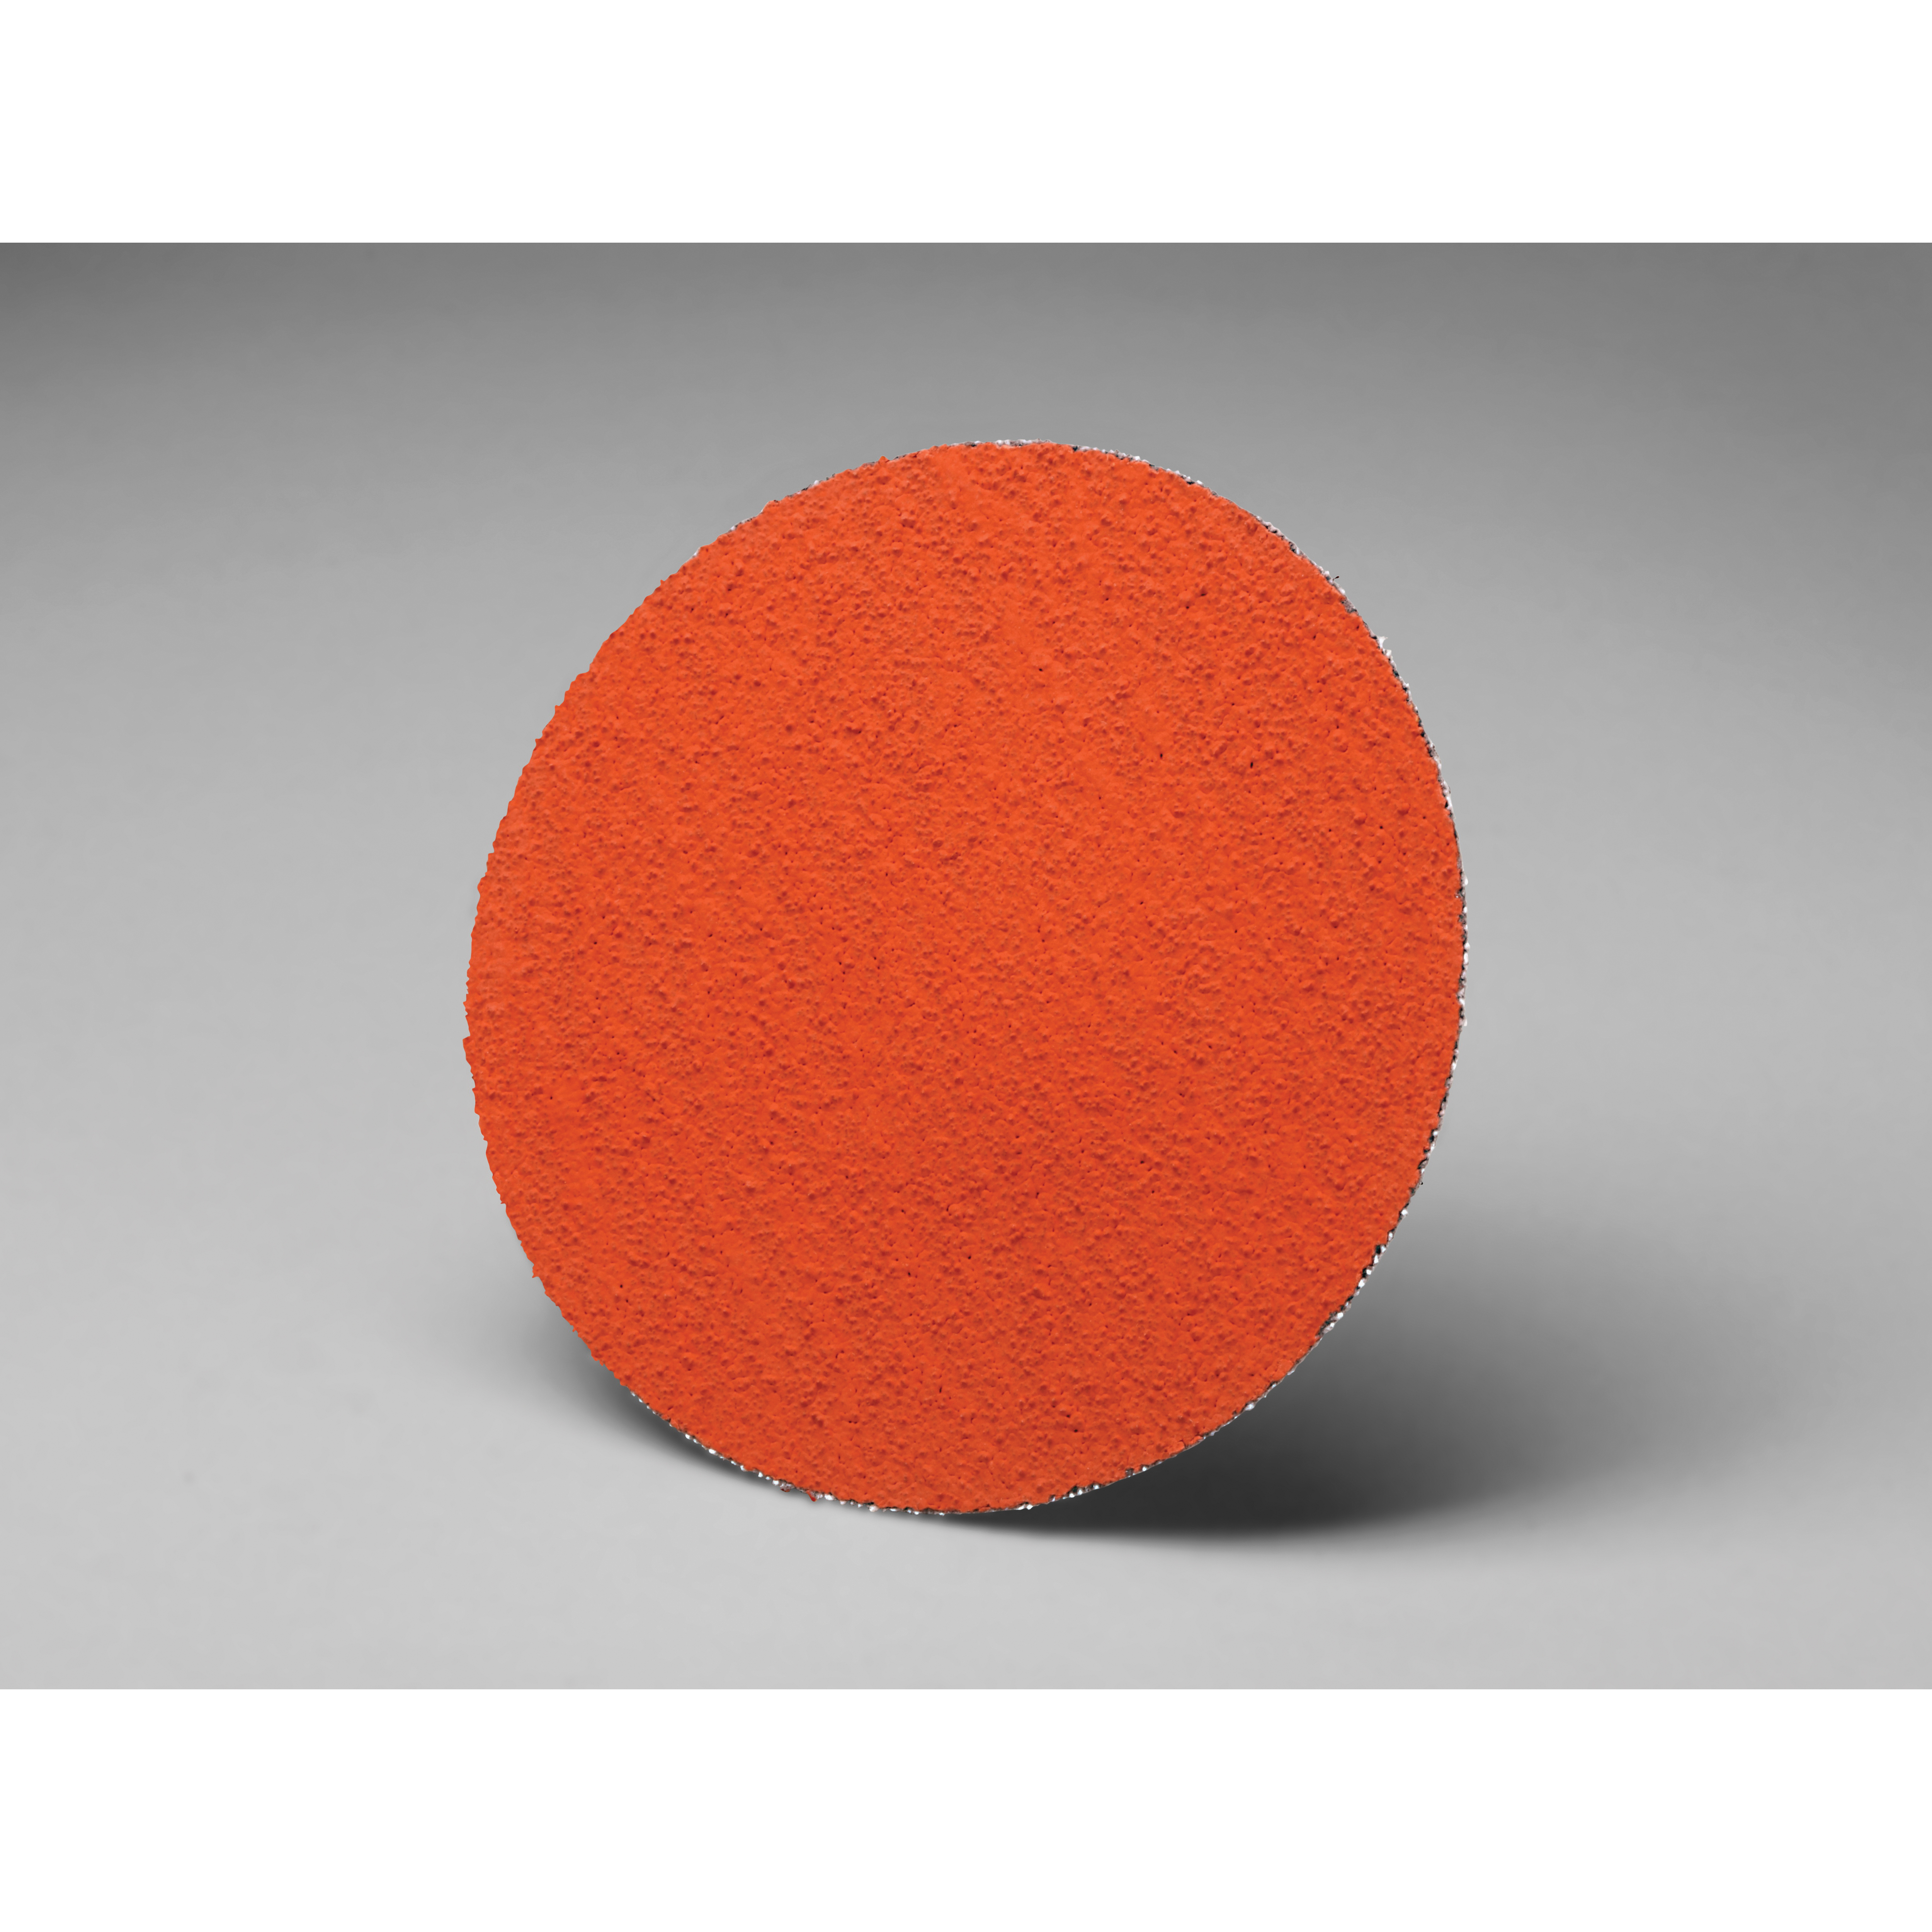 3M™ 051144-88869 PSA Close Coated Abrasive Disc, 12 in Dia, 36 Grit, Very Coarse Grade, Ceramic Abrasive, Polyester Backing